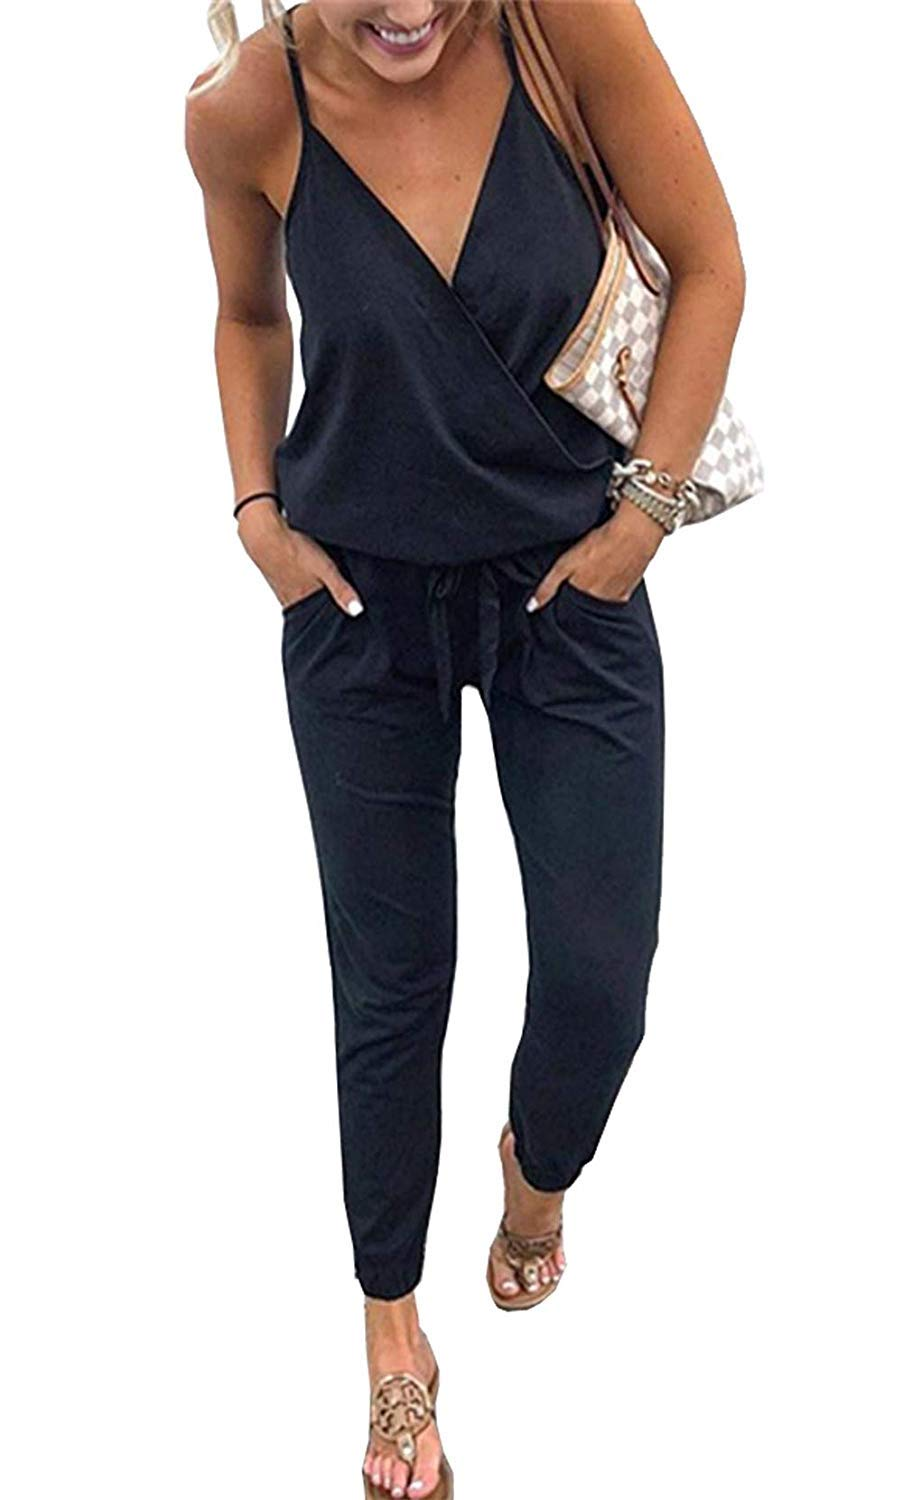 QEESMEI Women's Jumpsuits Rompers V Neck Spaghetti Strap Elastic Waisted Long Pants Jumpsuits Black by QEESMEI